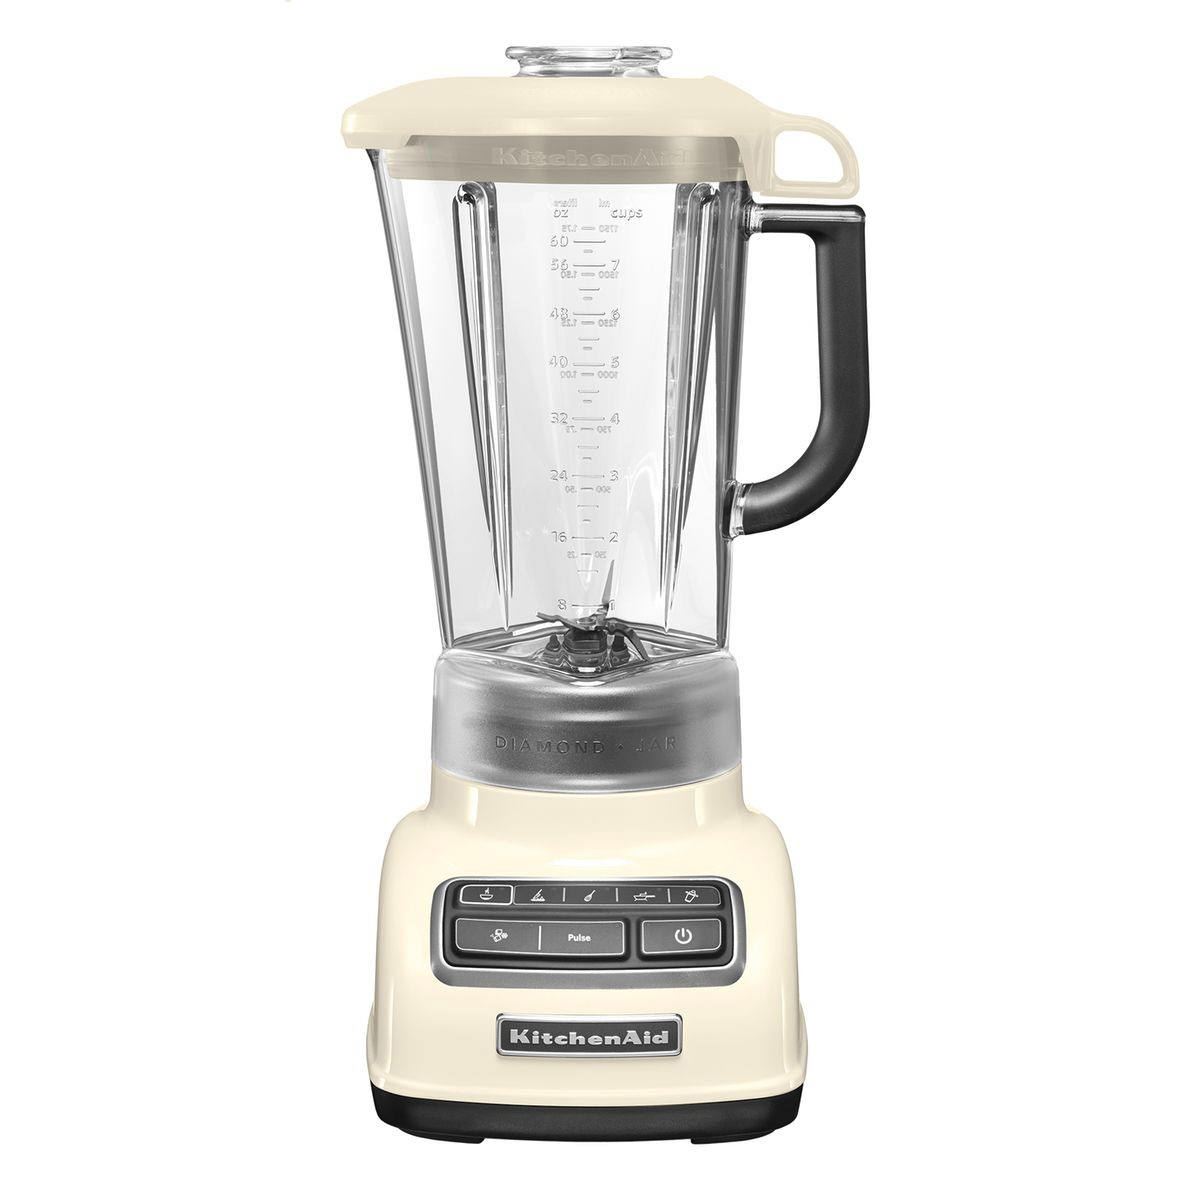 Blog-Mode-And-The-City-Lifestyle-Cinq-Petites-Choses-231-kitchenaid-blender